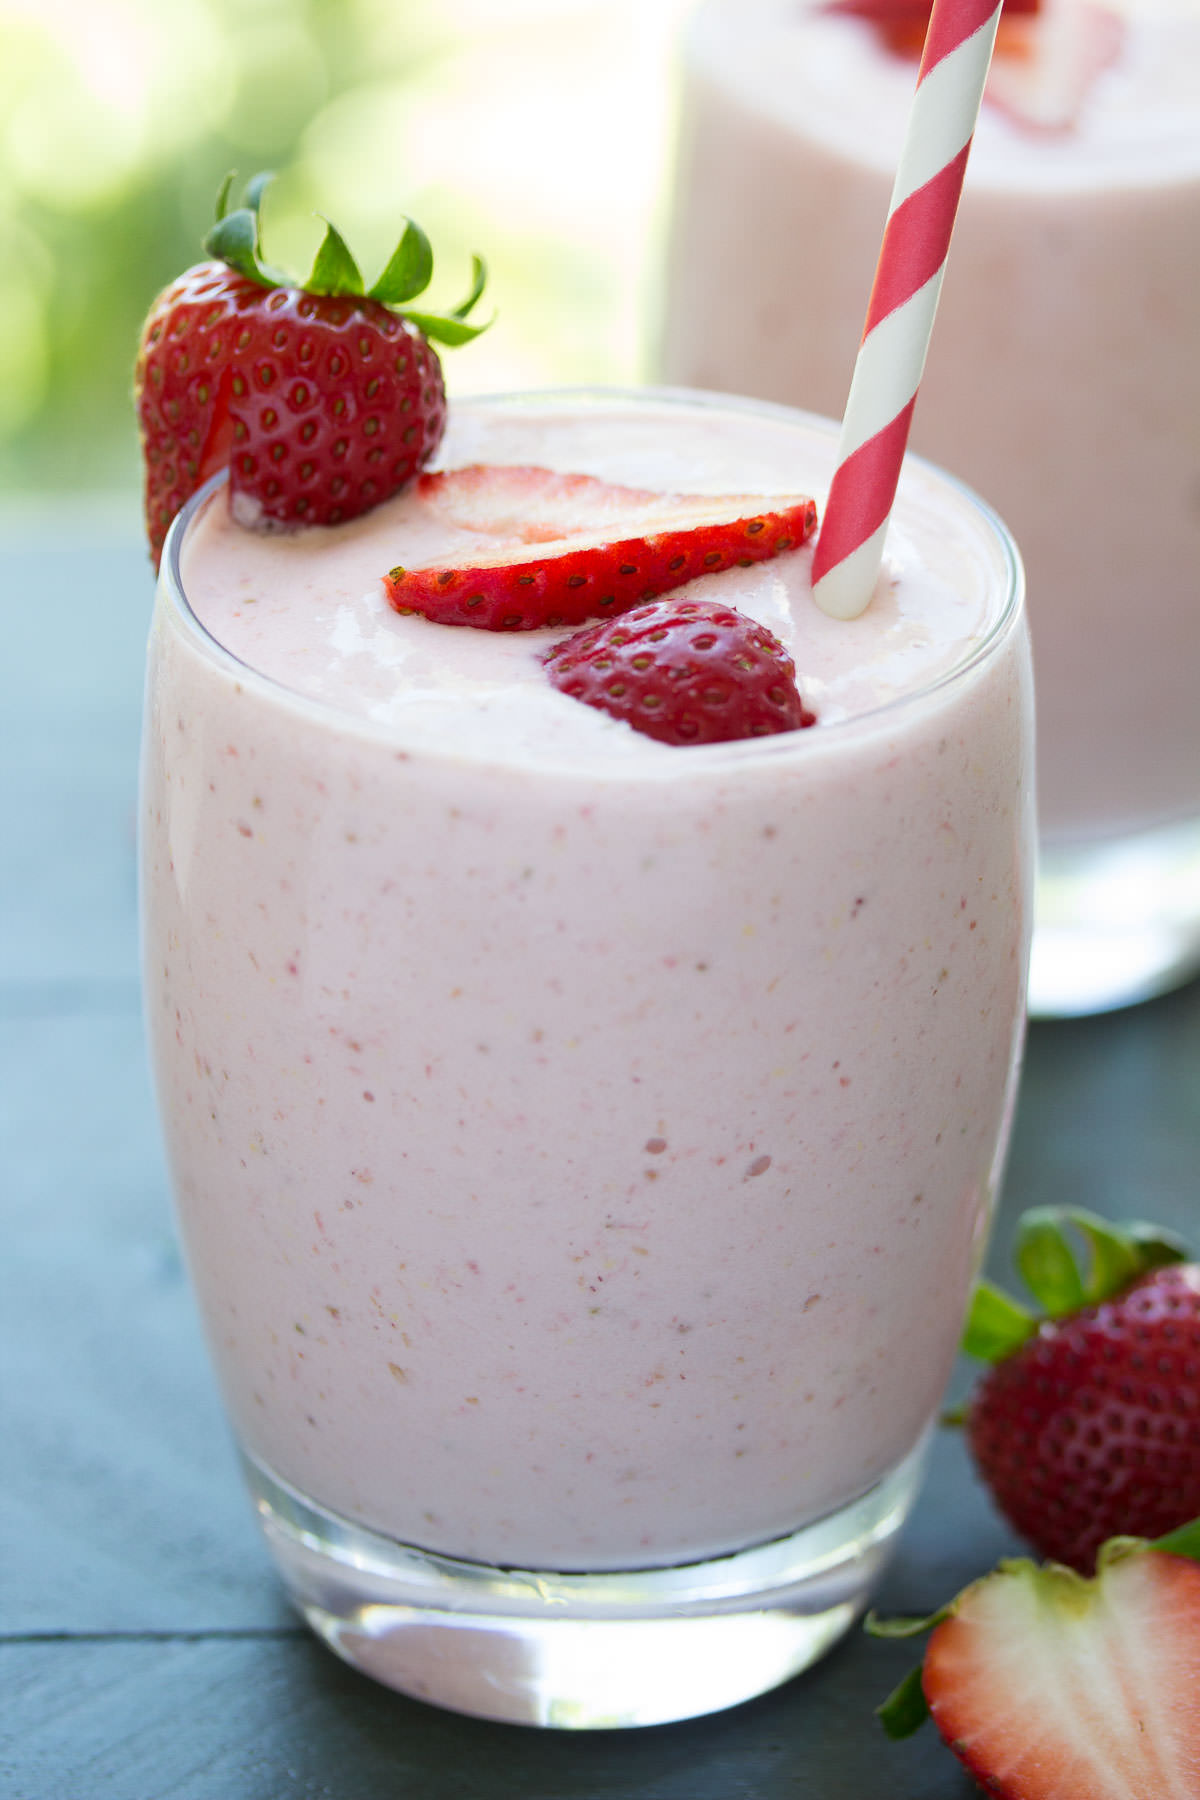 This Strawberry Milkshake Smoothie tastes just like a strawberry milkshake, but it's healthy! Protein-packed Greek yogurt makes it super creamy!